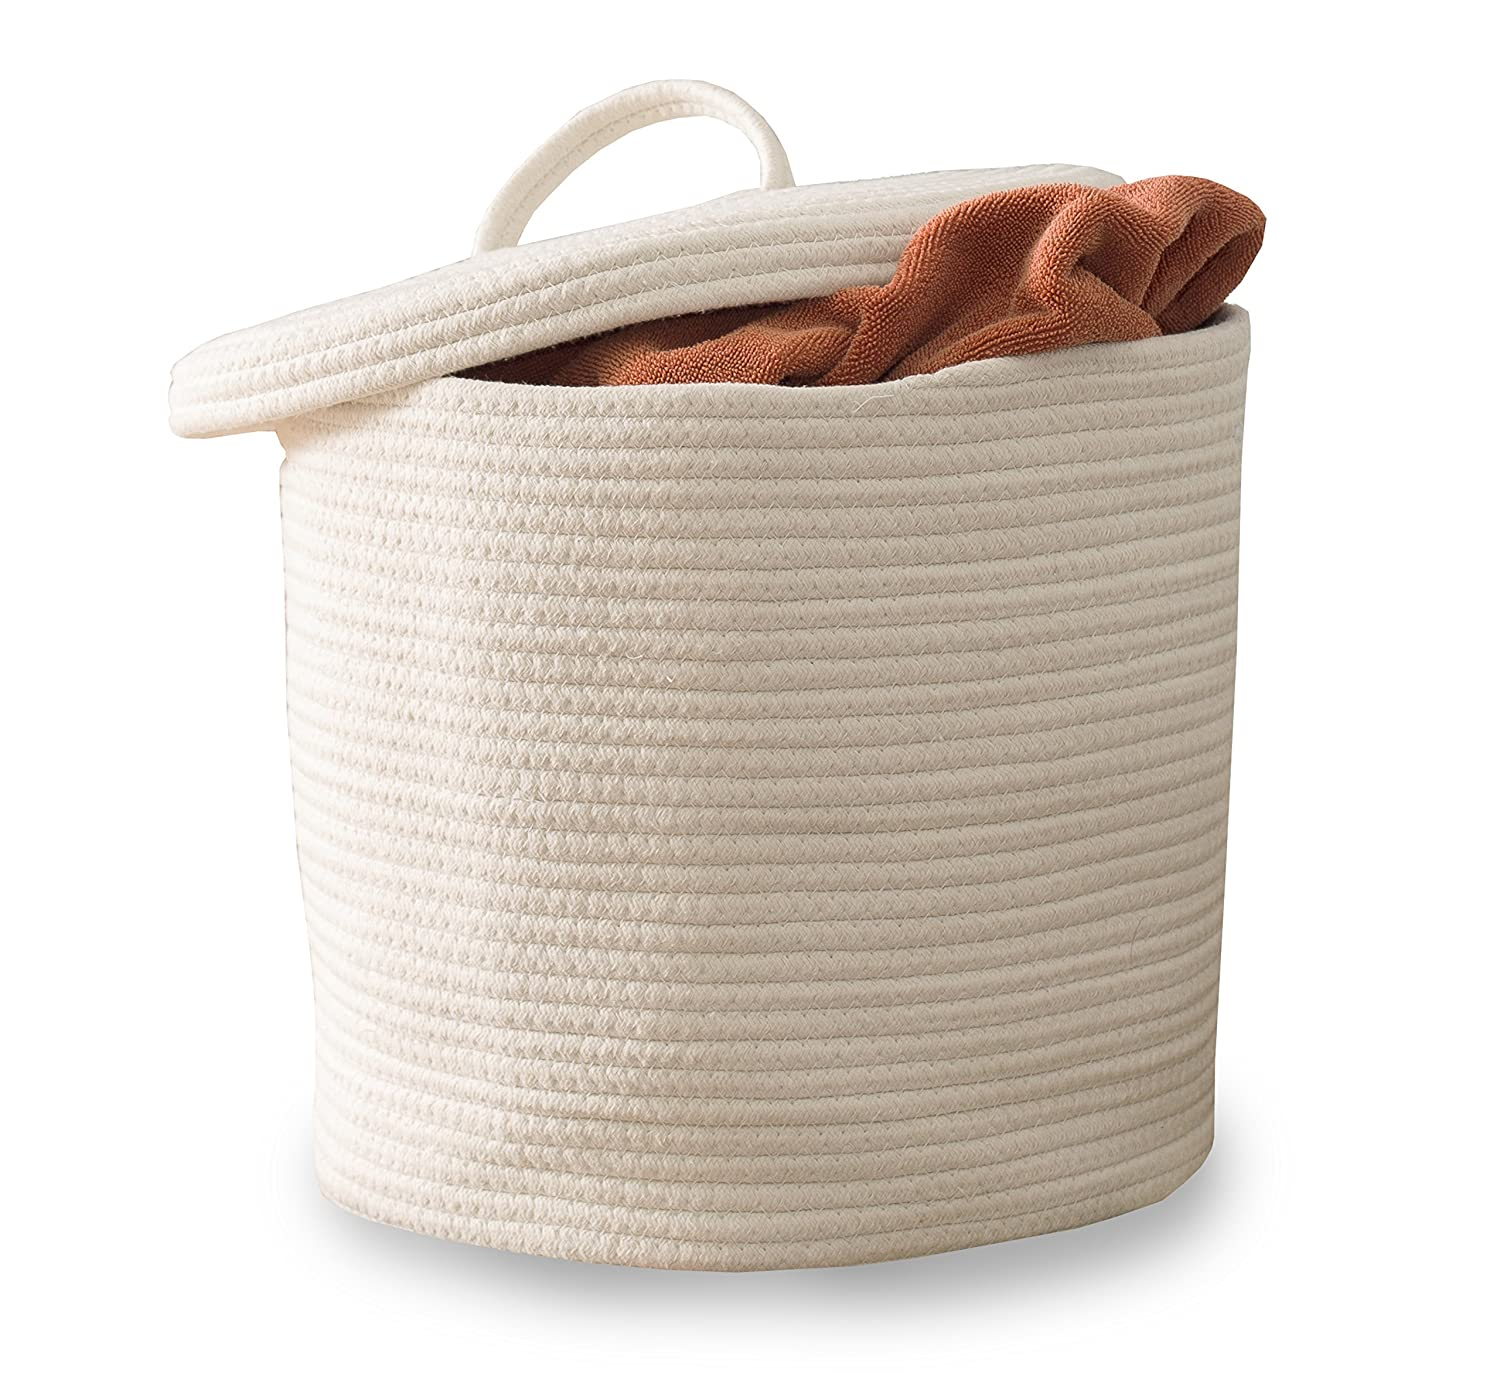 Vada Designs Storage Basket with Lid - Large Woven Cotton Rope Basket with Lid and Handles 15